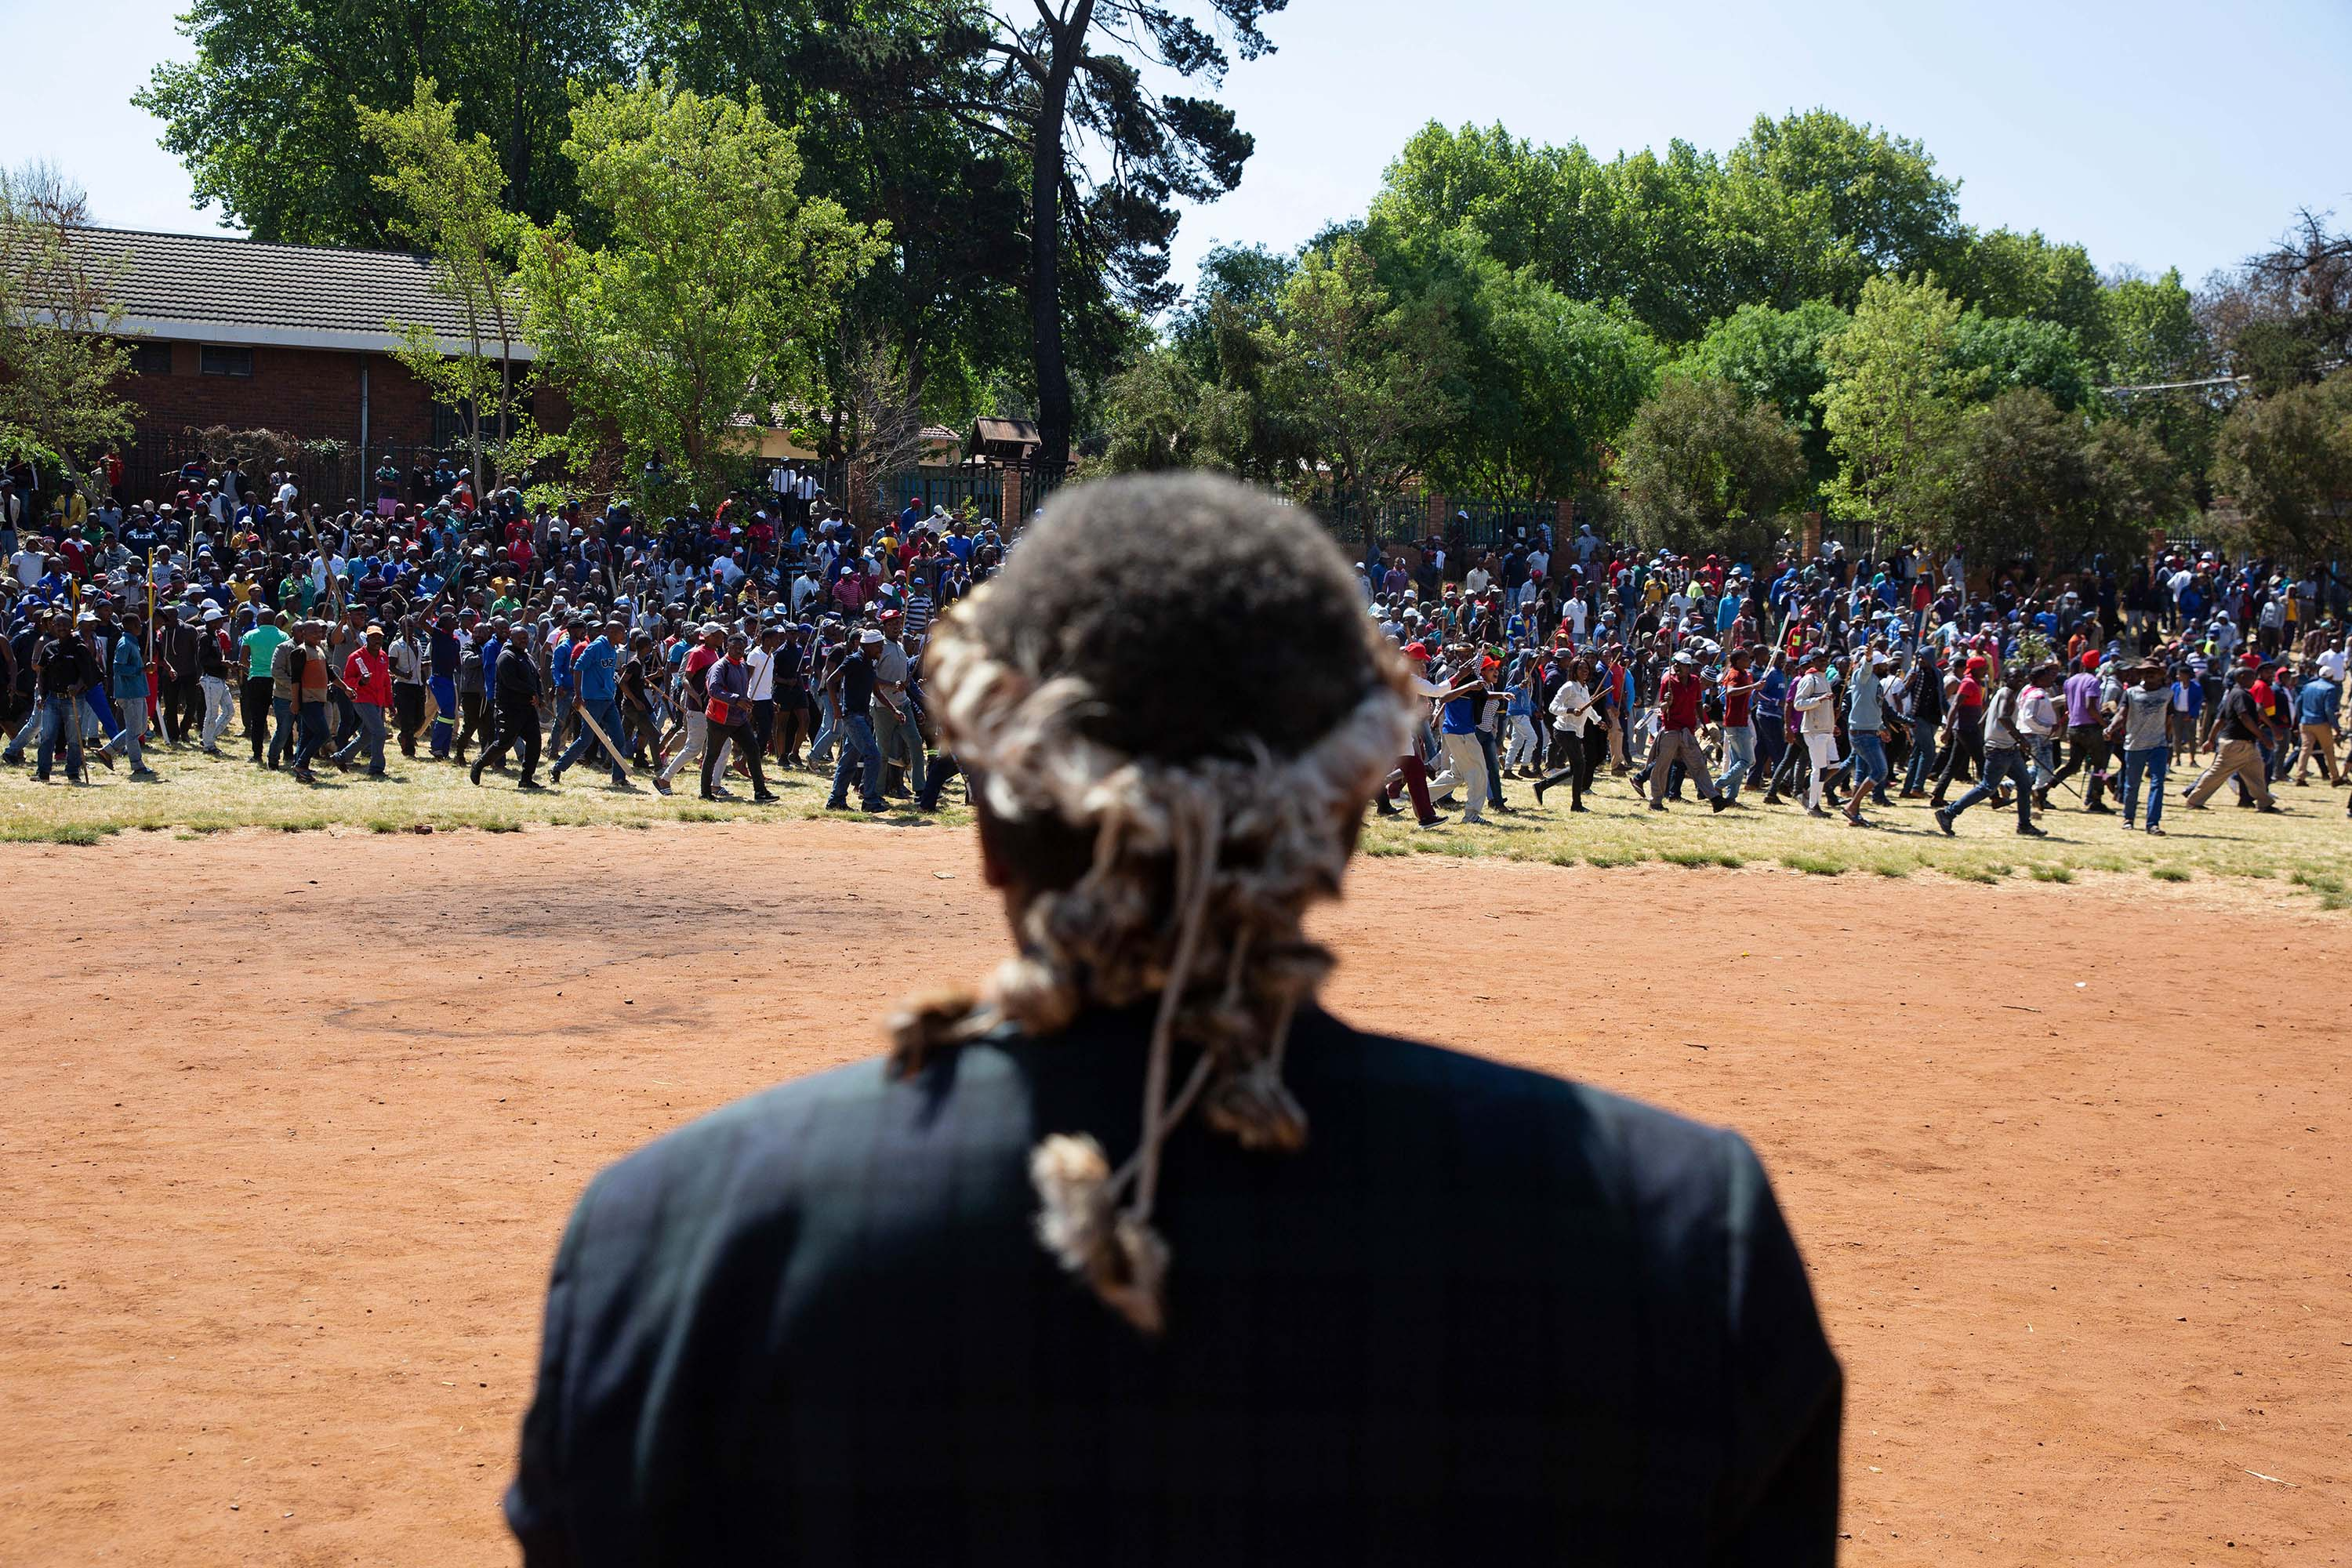 8 September 2019: An induna watches as a dissatisfied crowd of men leaves Murray Park during Mangosuthu Buthelezi's speech. (Photograph by James Oatway)